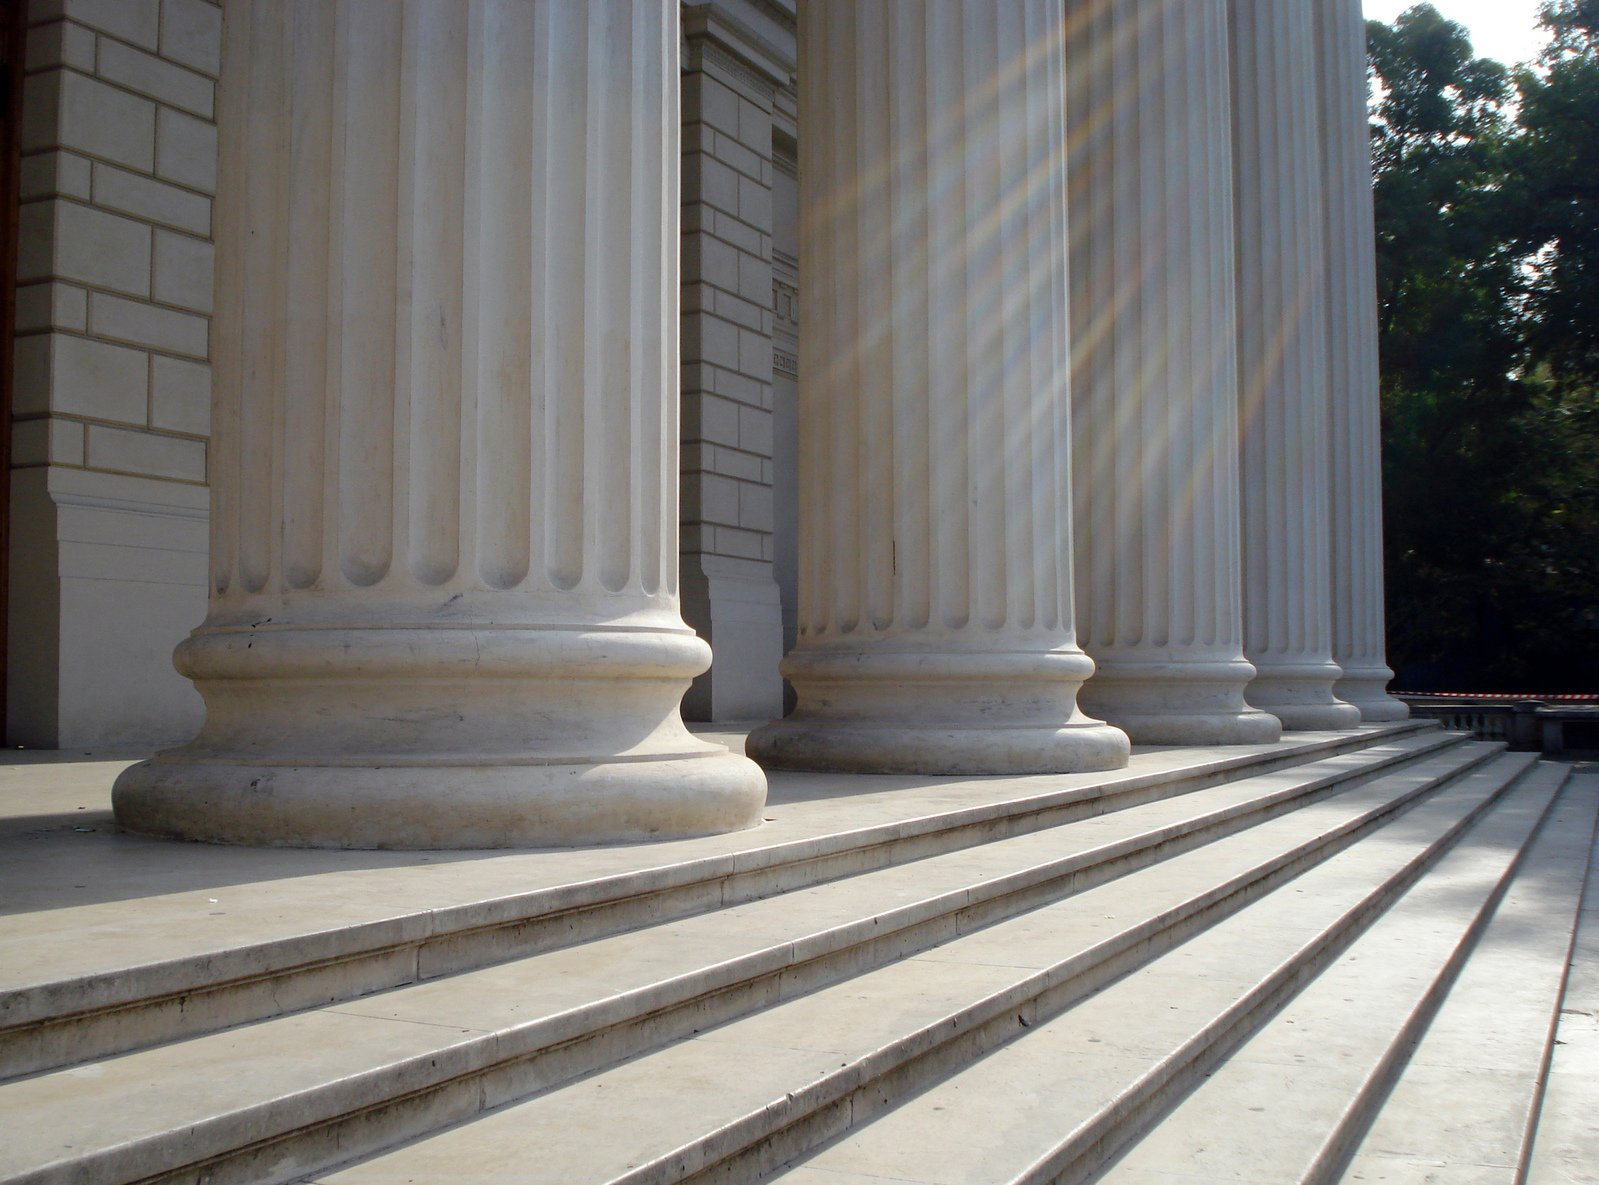 Columns outside courthouse